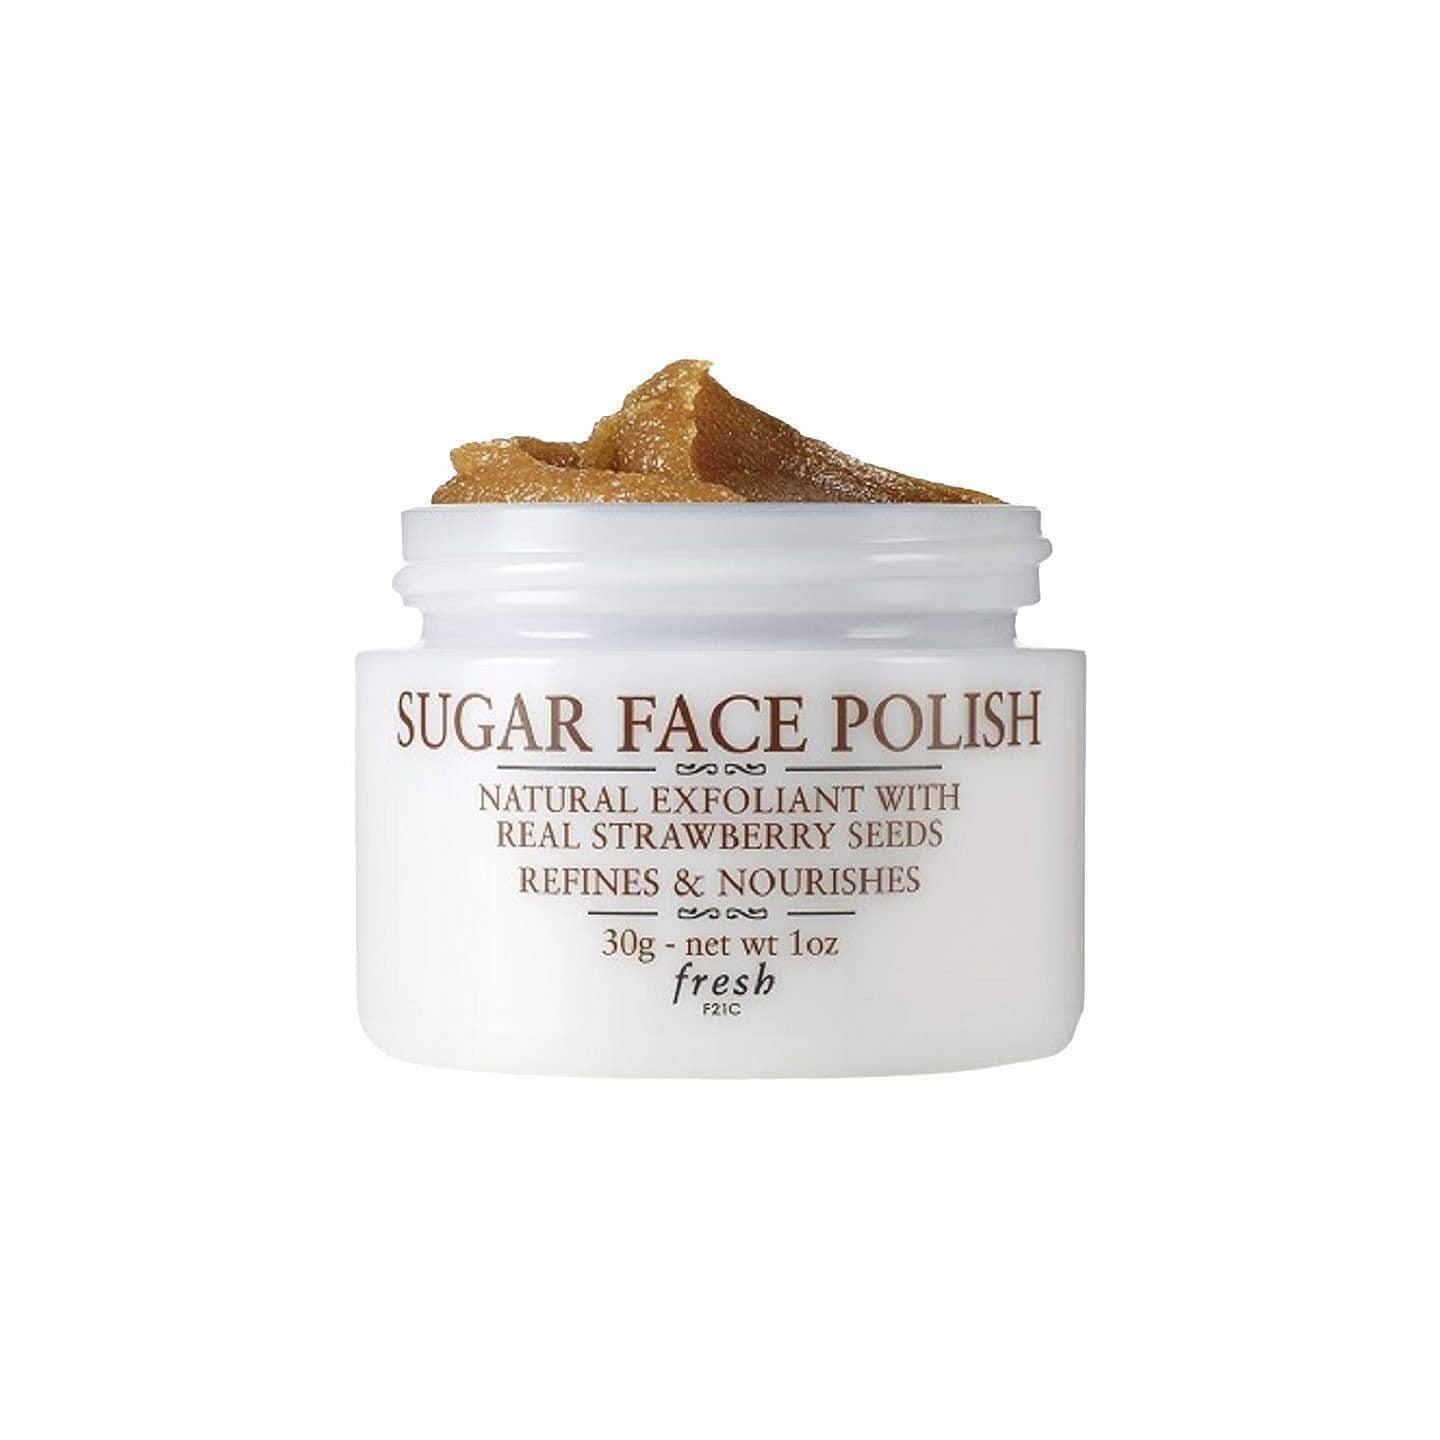 Fresh Sugar Face Polish To Go, 30g, skin care, London Loves Beauty